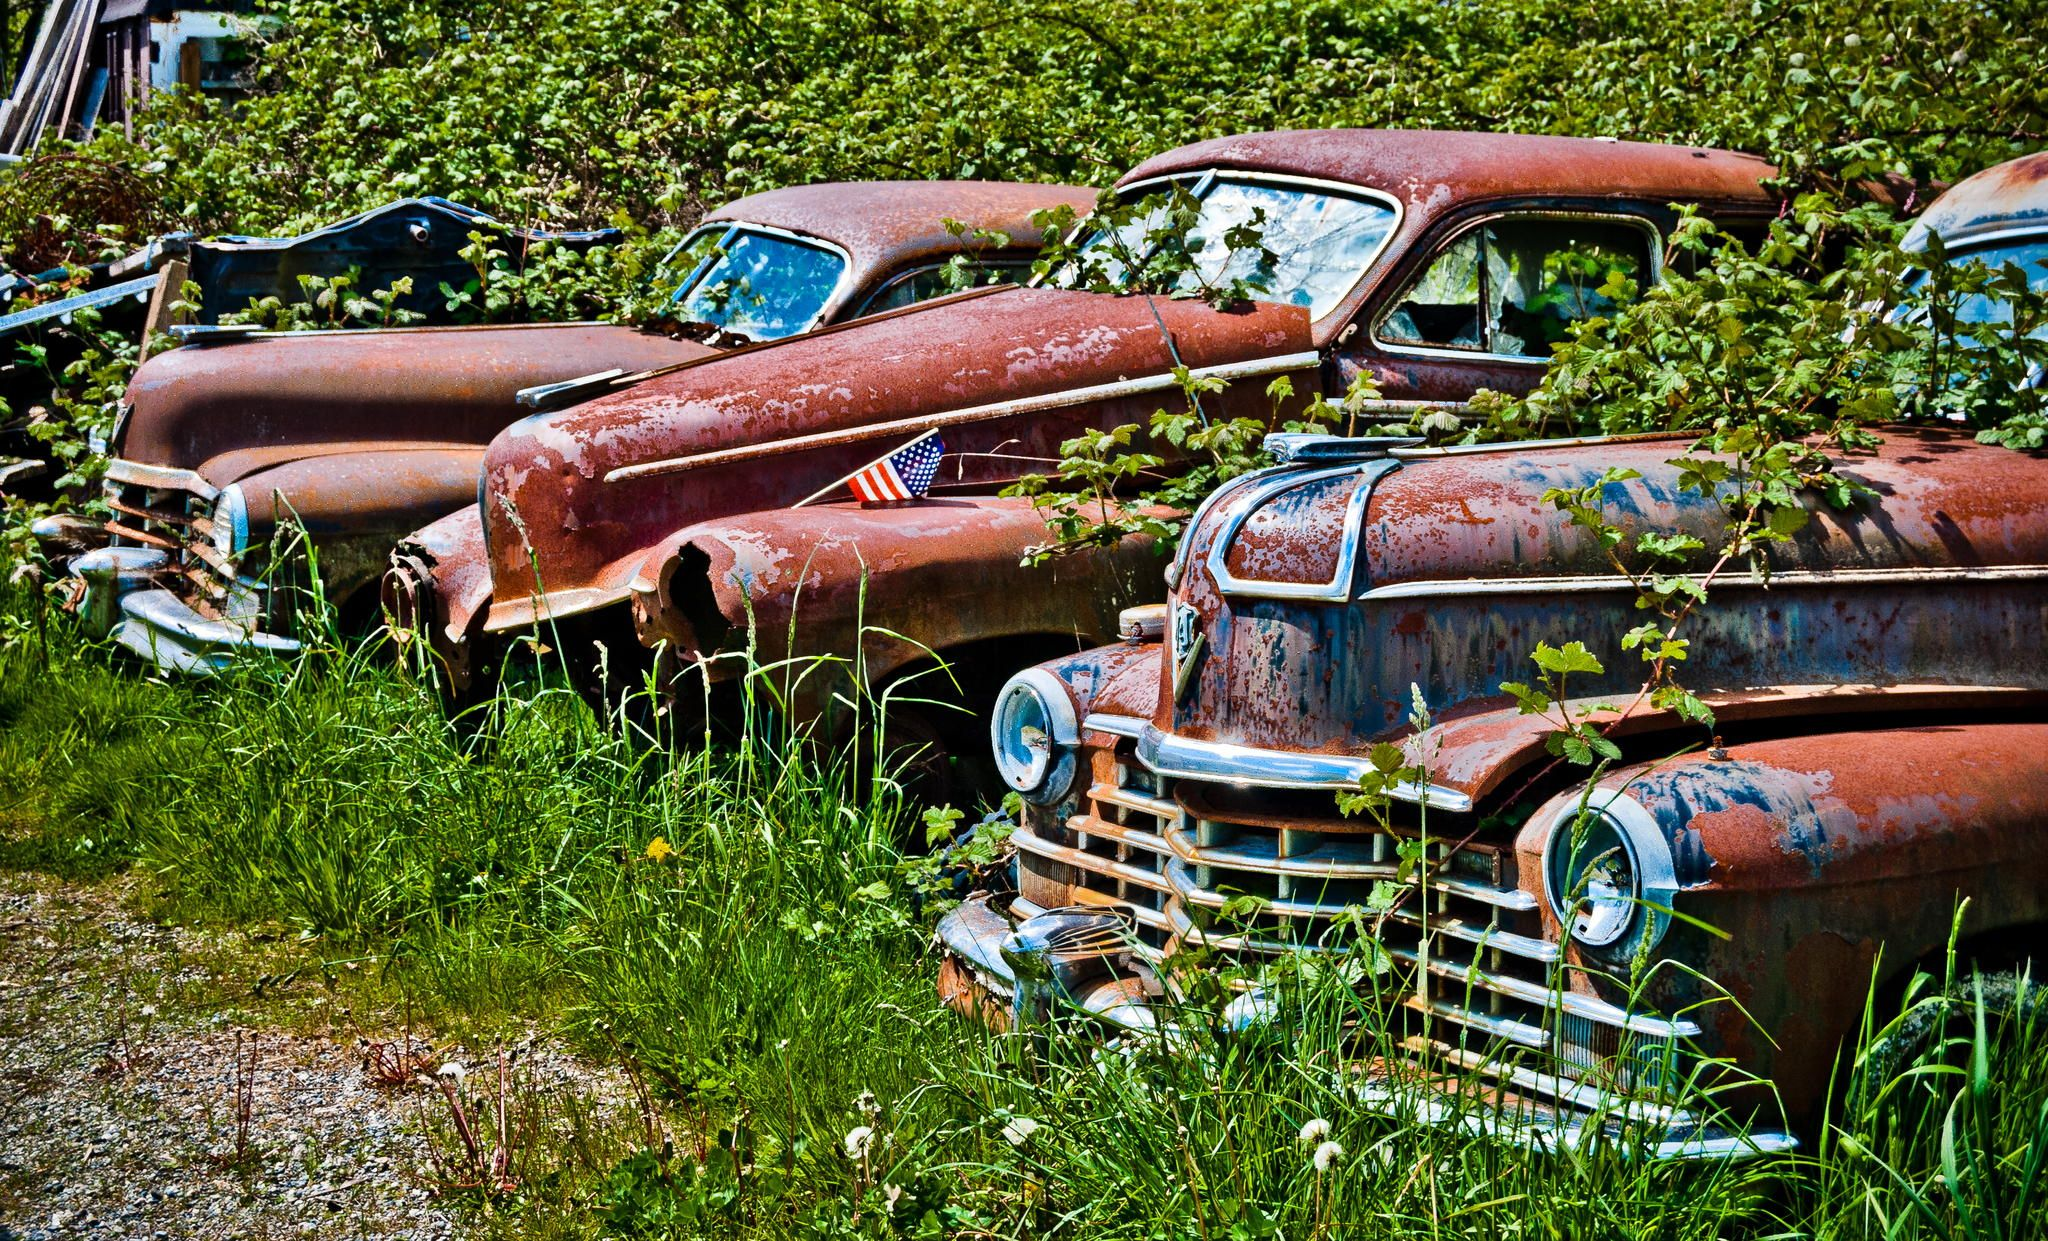 Cadillacs at Rust by Steve Tosterud on 500px